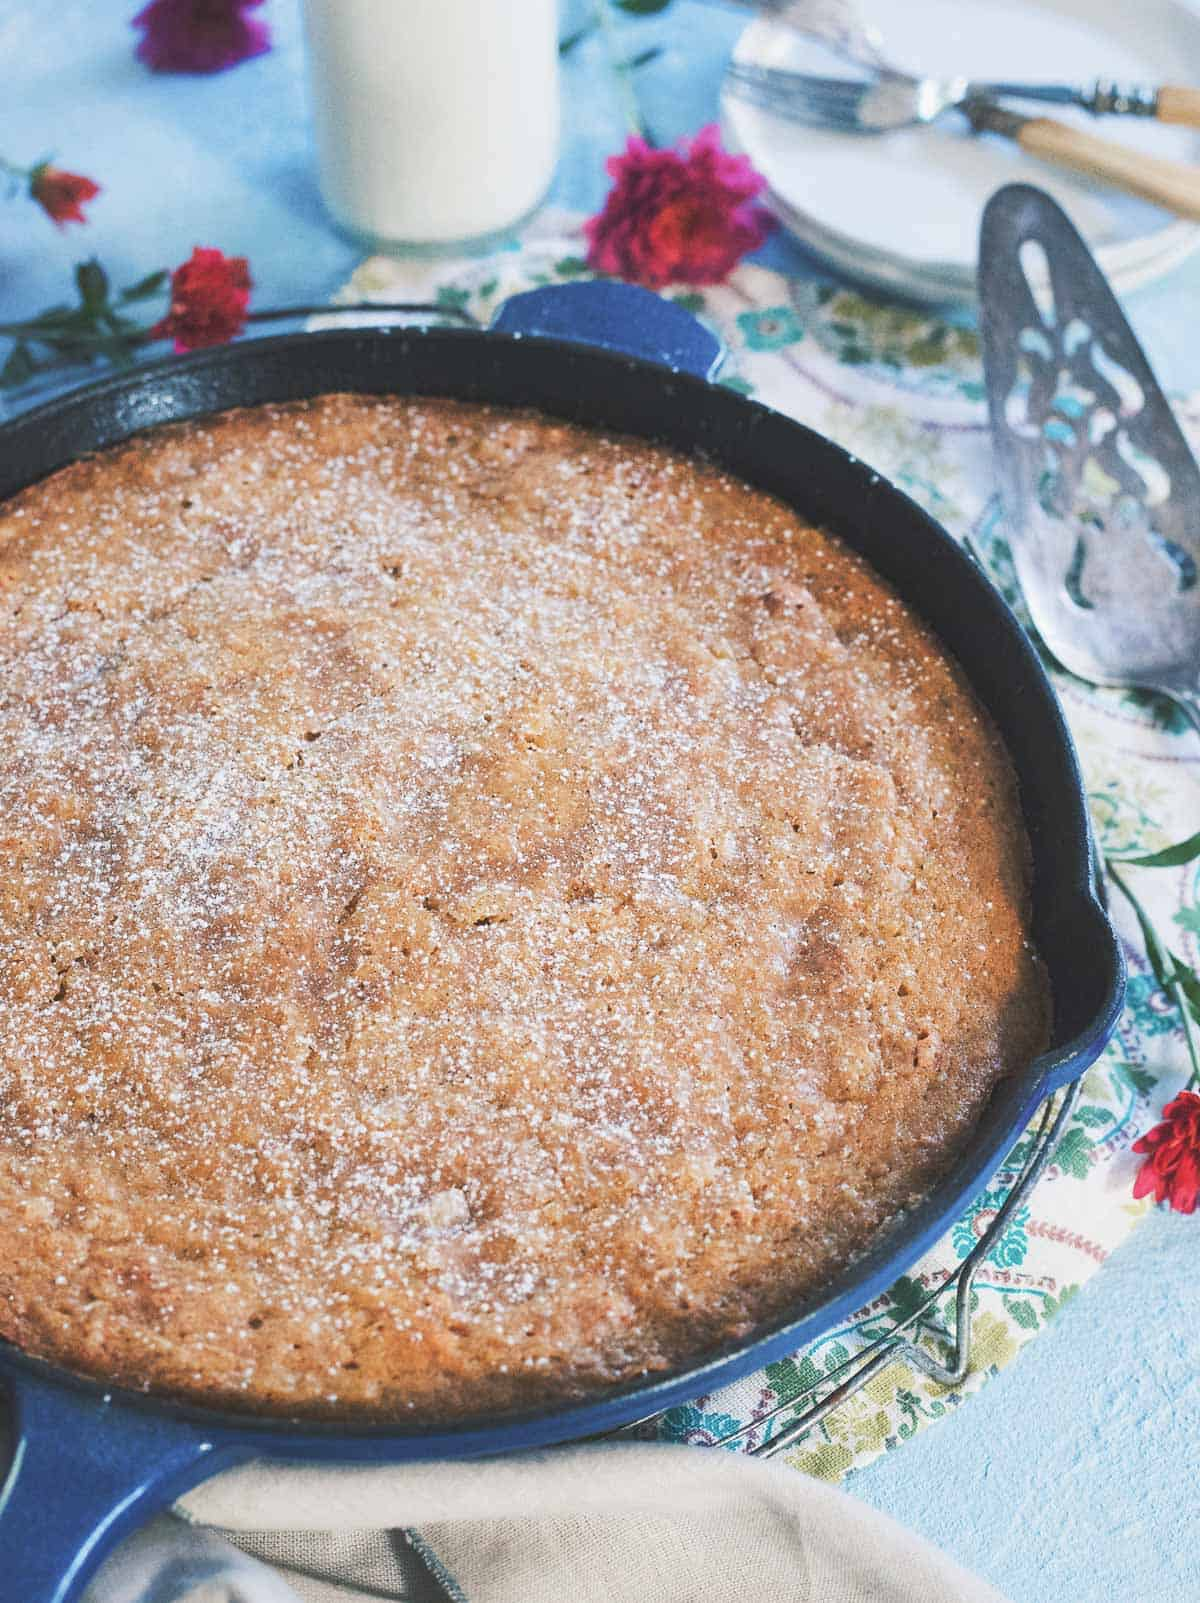 Made with applesauce, golden raisins and apple cider, this easy skillet cake is the quintessential fall dessert.